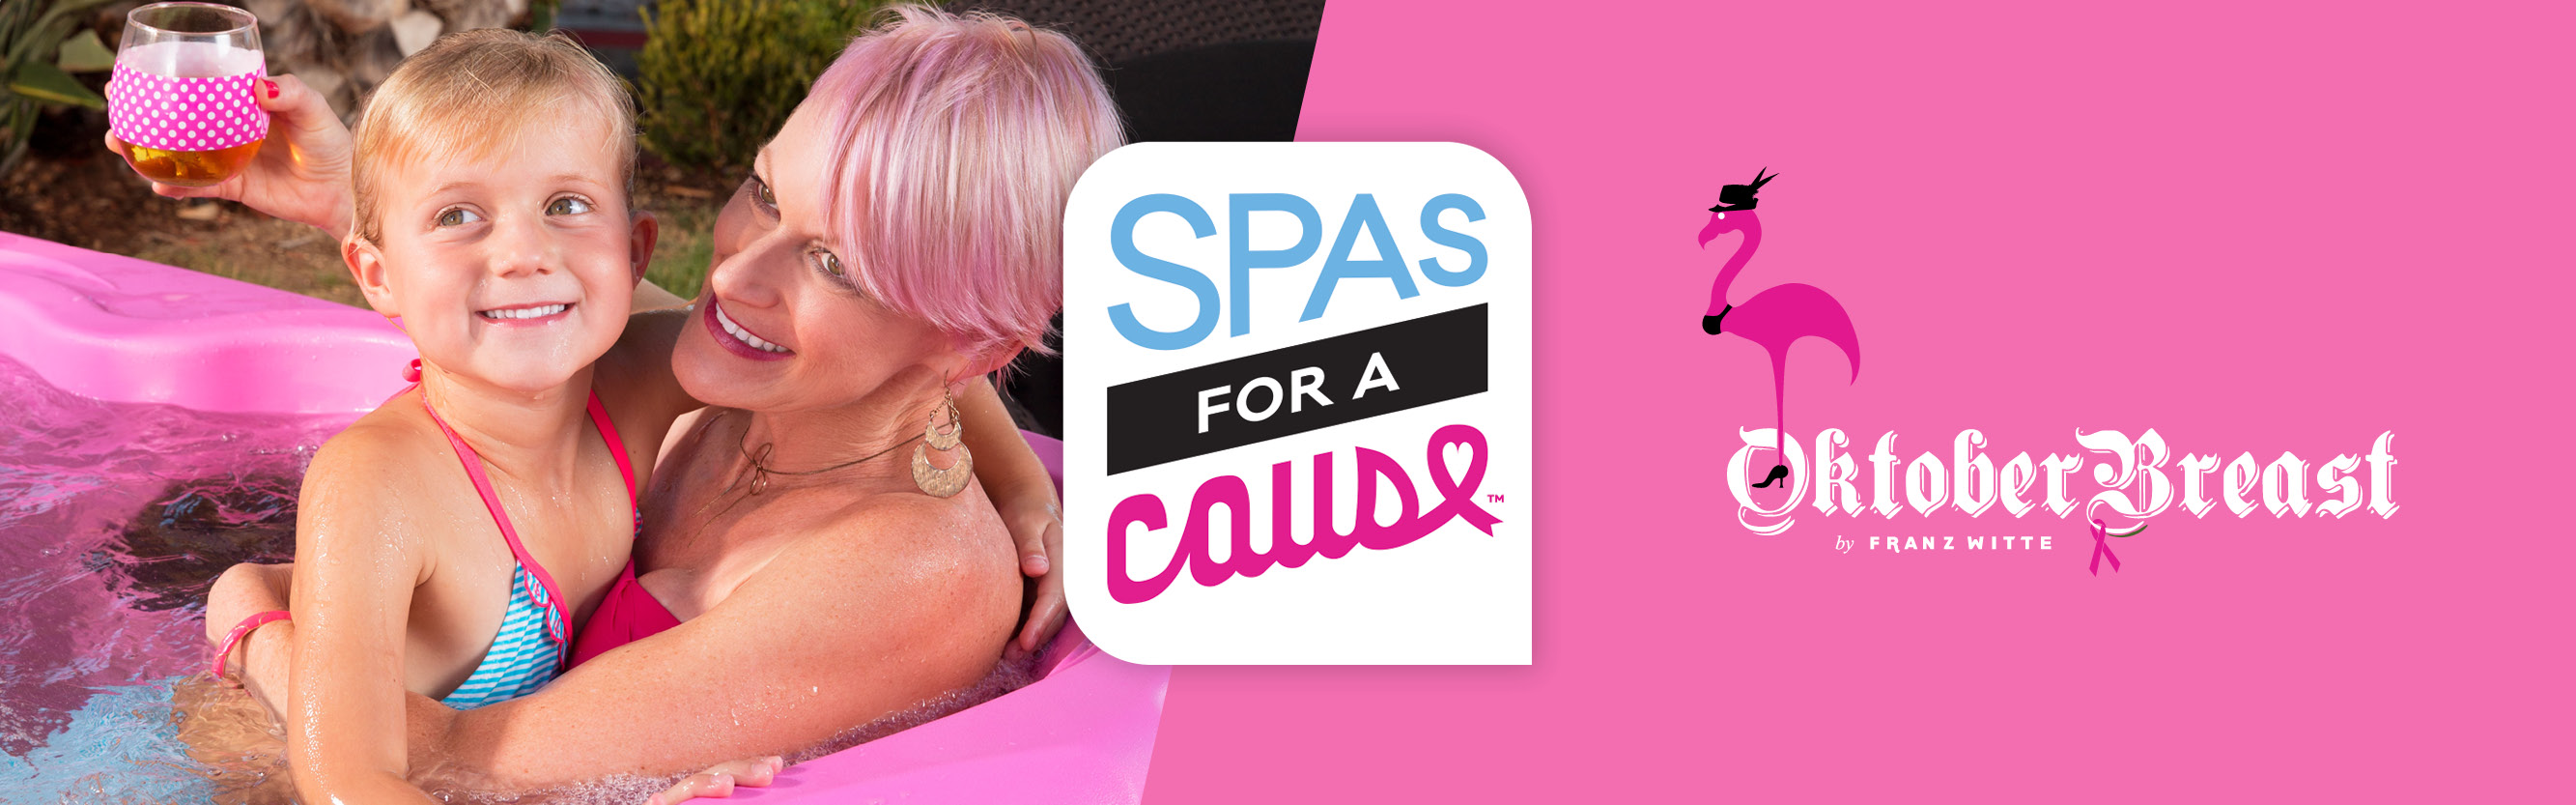 A Pink Hot Tub & Sponsorship for Franz Witt's Octoberbreast